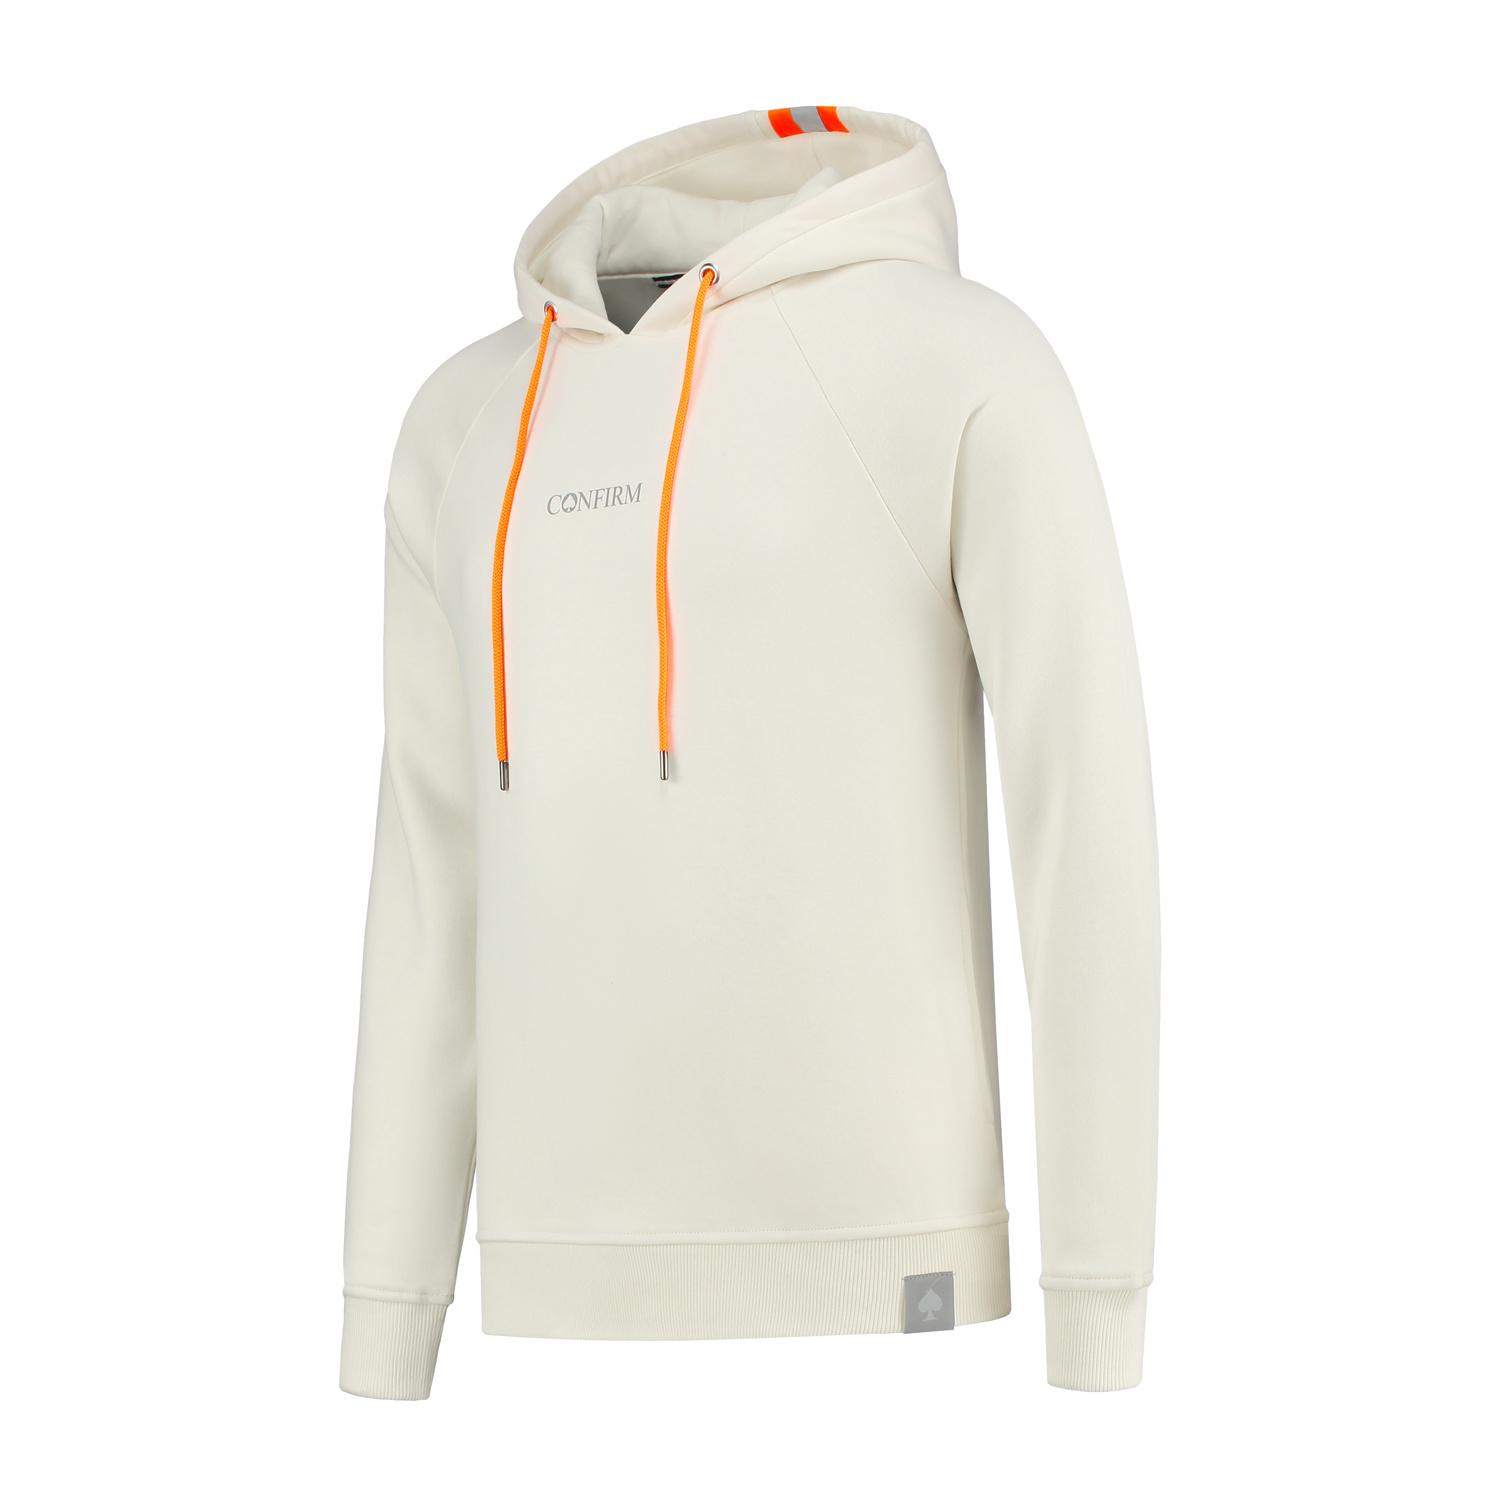 Confirm Fluor Reflective Hoodie - Offwhite-2